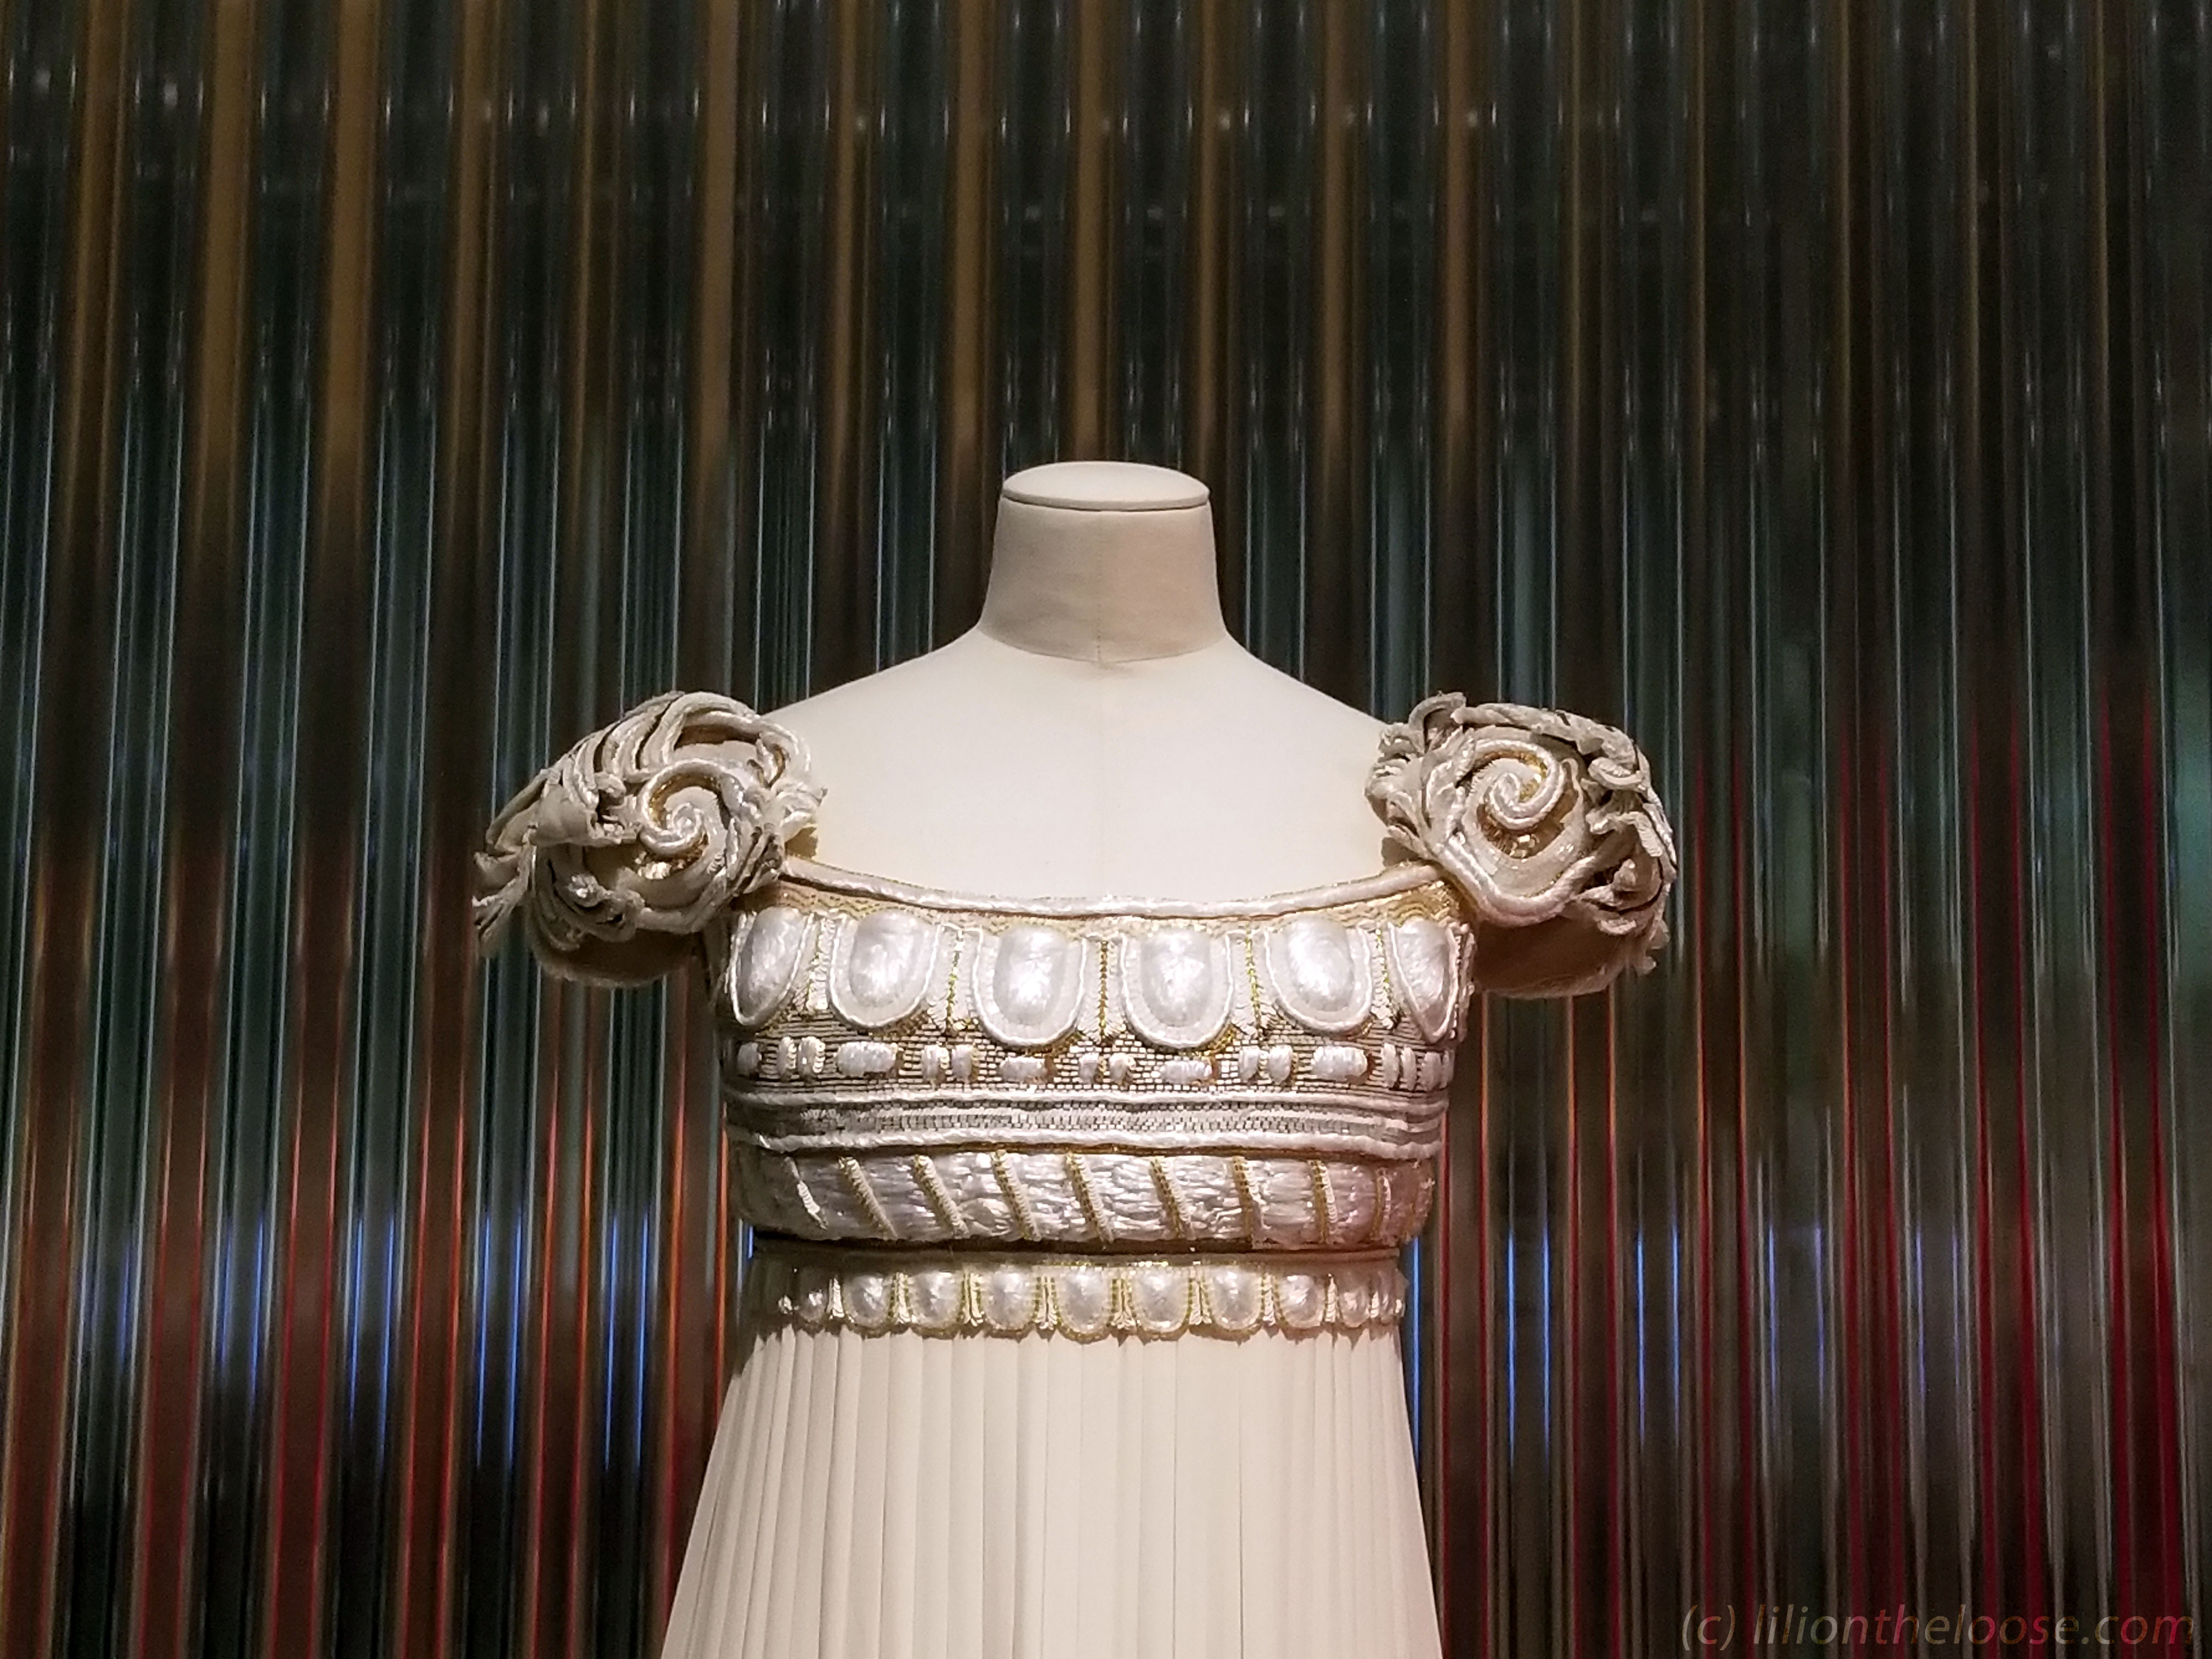 cb3cee8bd9e Denver Art Museum has an exhibit called Dior: From Paris to the World right  now and it's really well done. Each space has its own style, lighting, ...